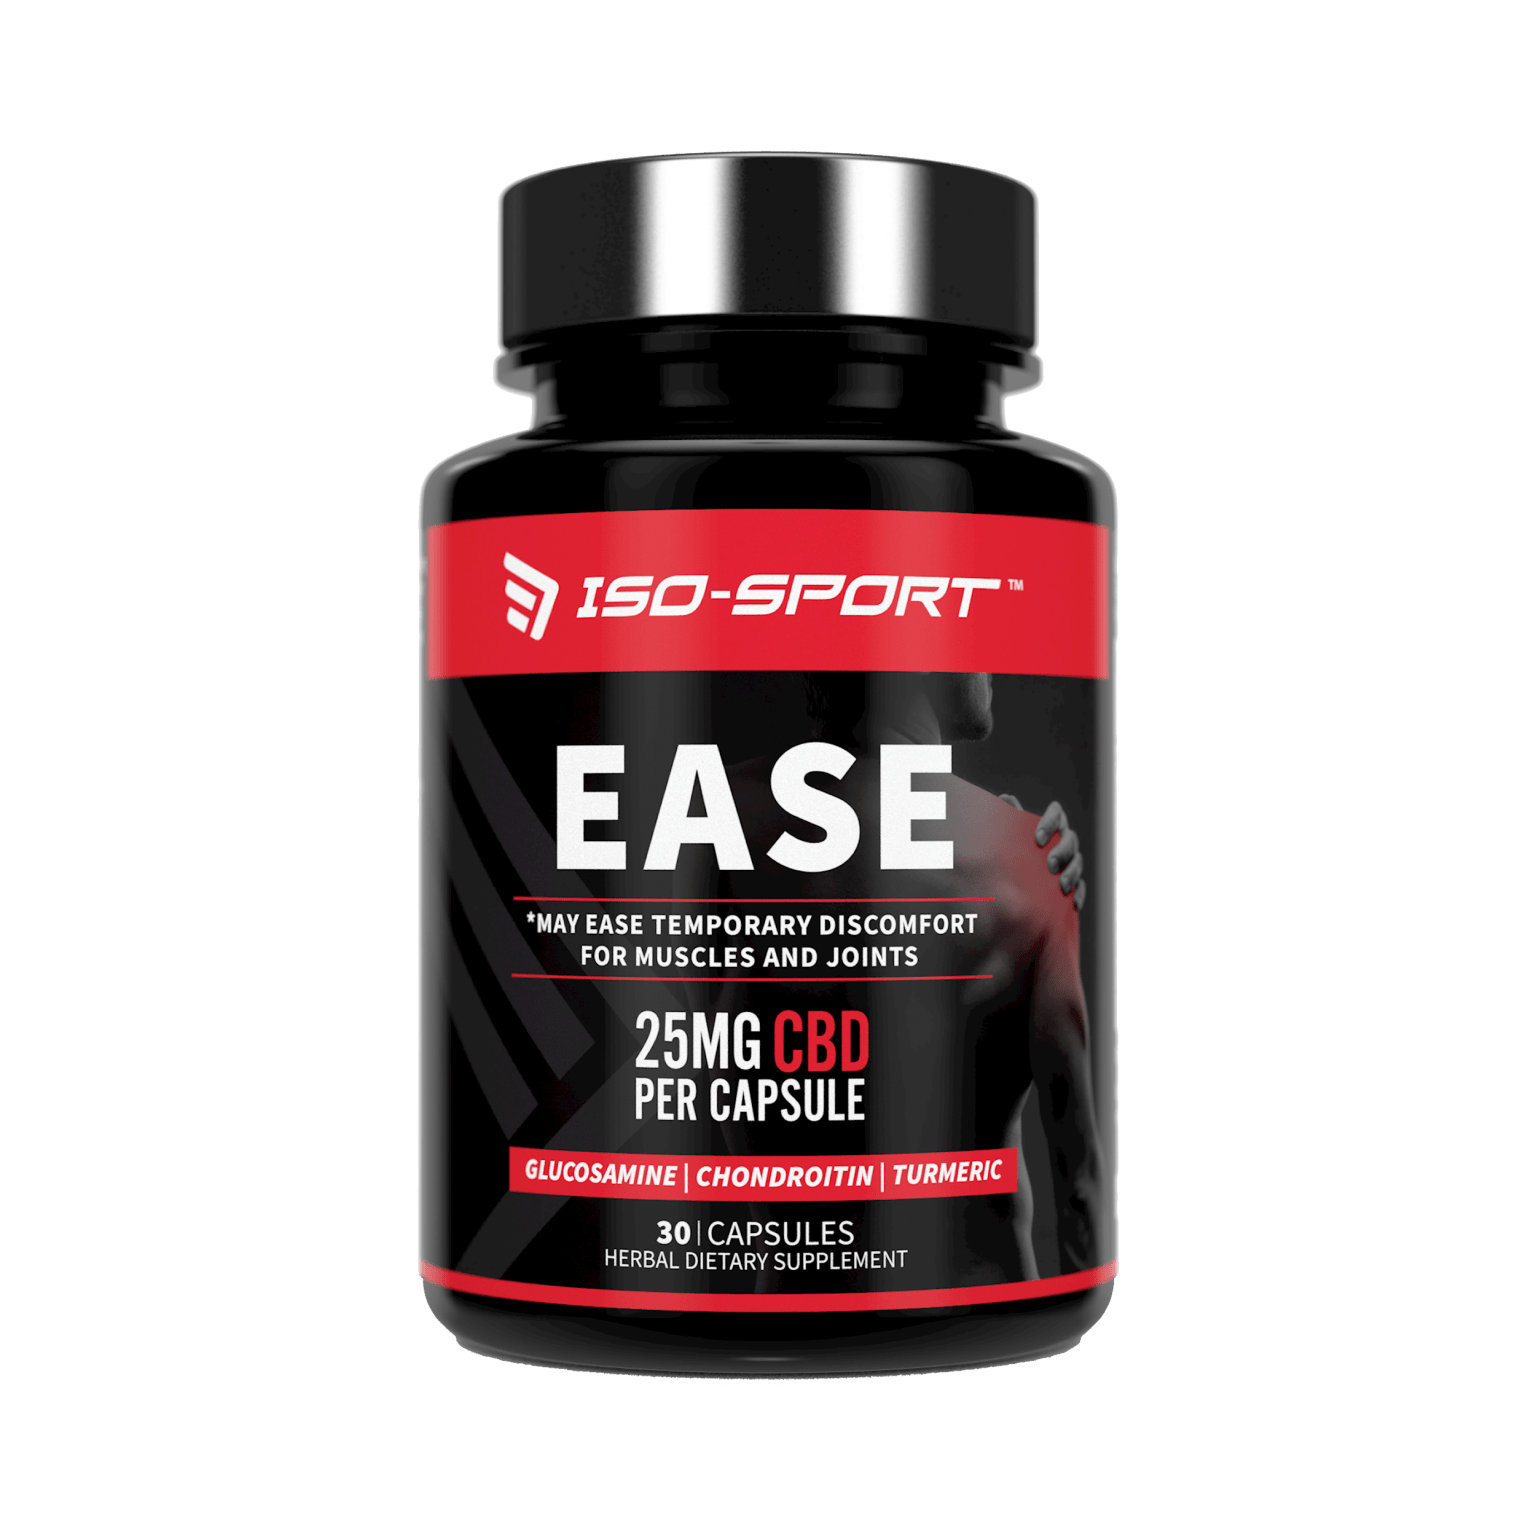 Iso-Sport Ease CBD Pain Relief Capsules